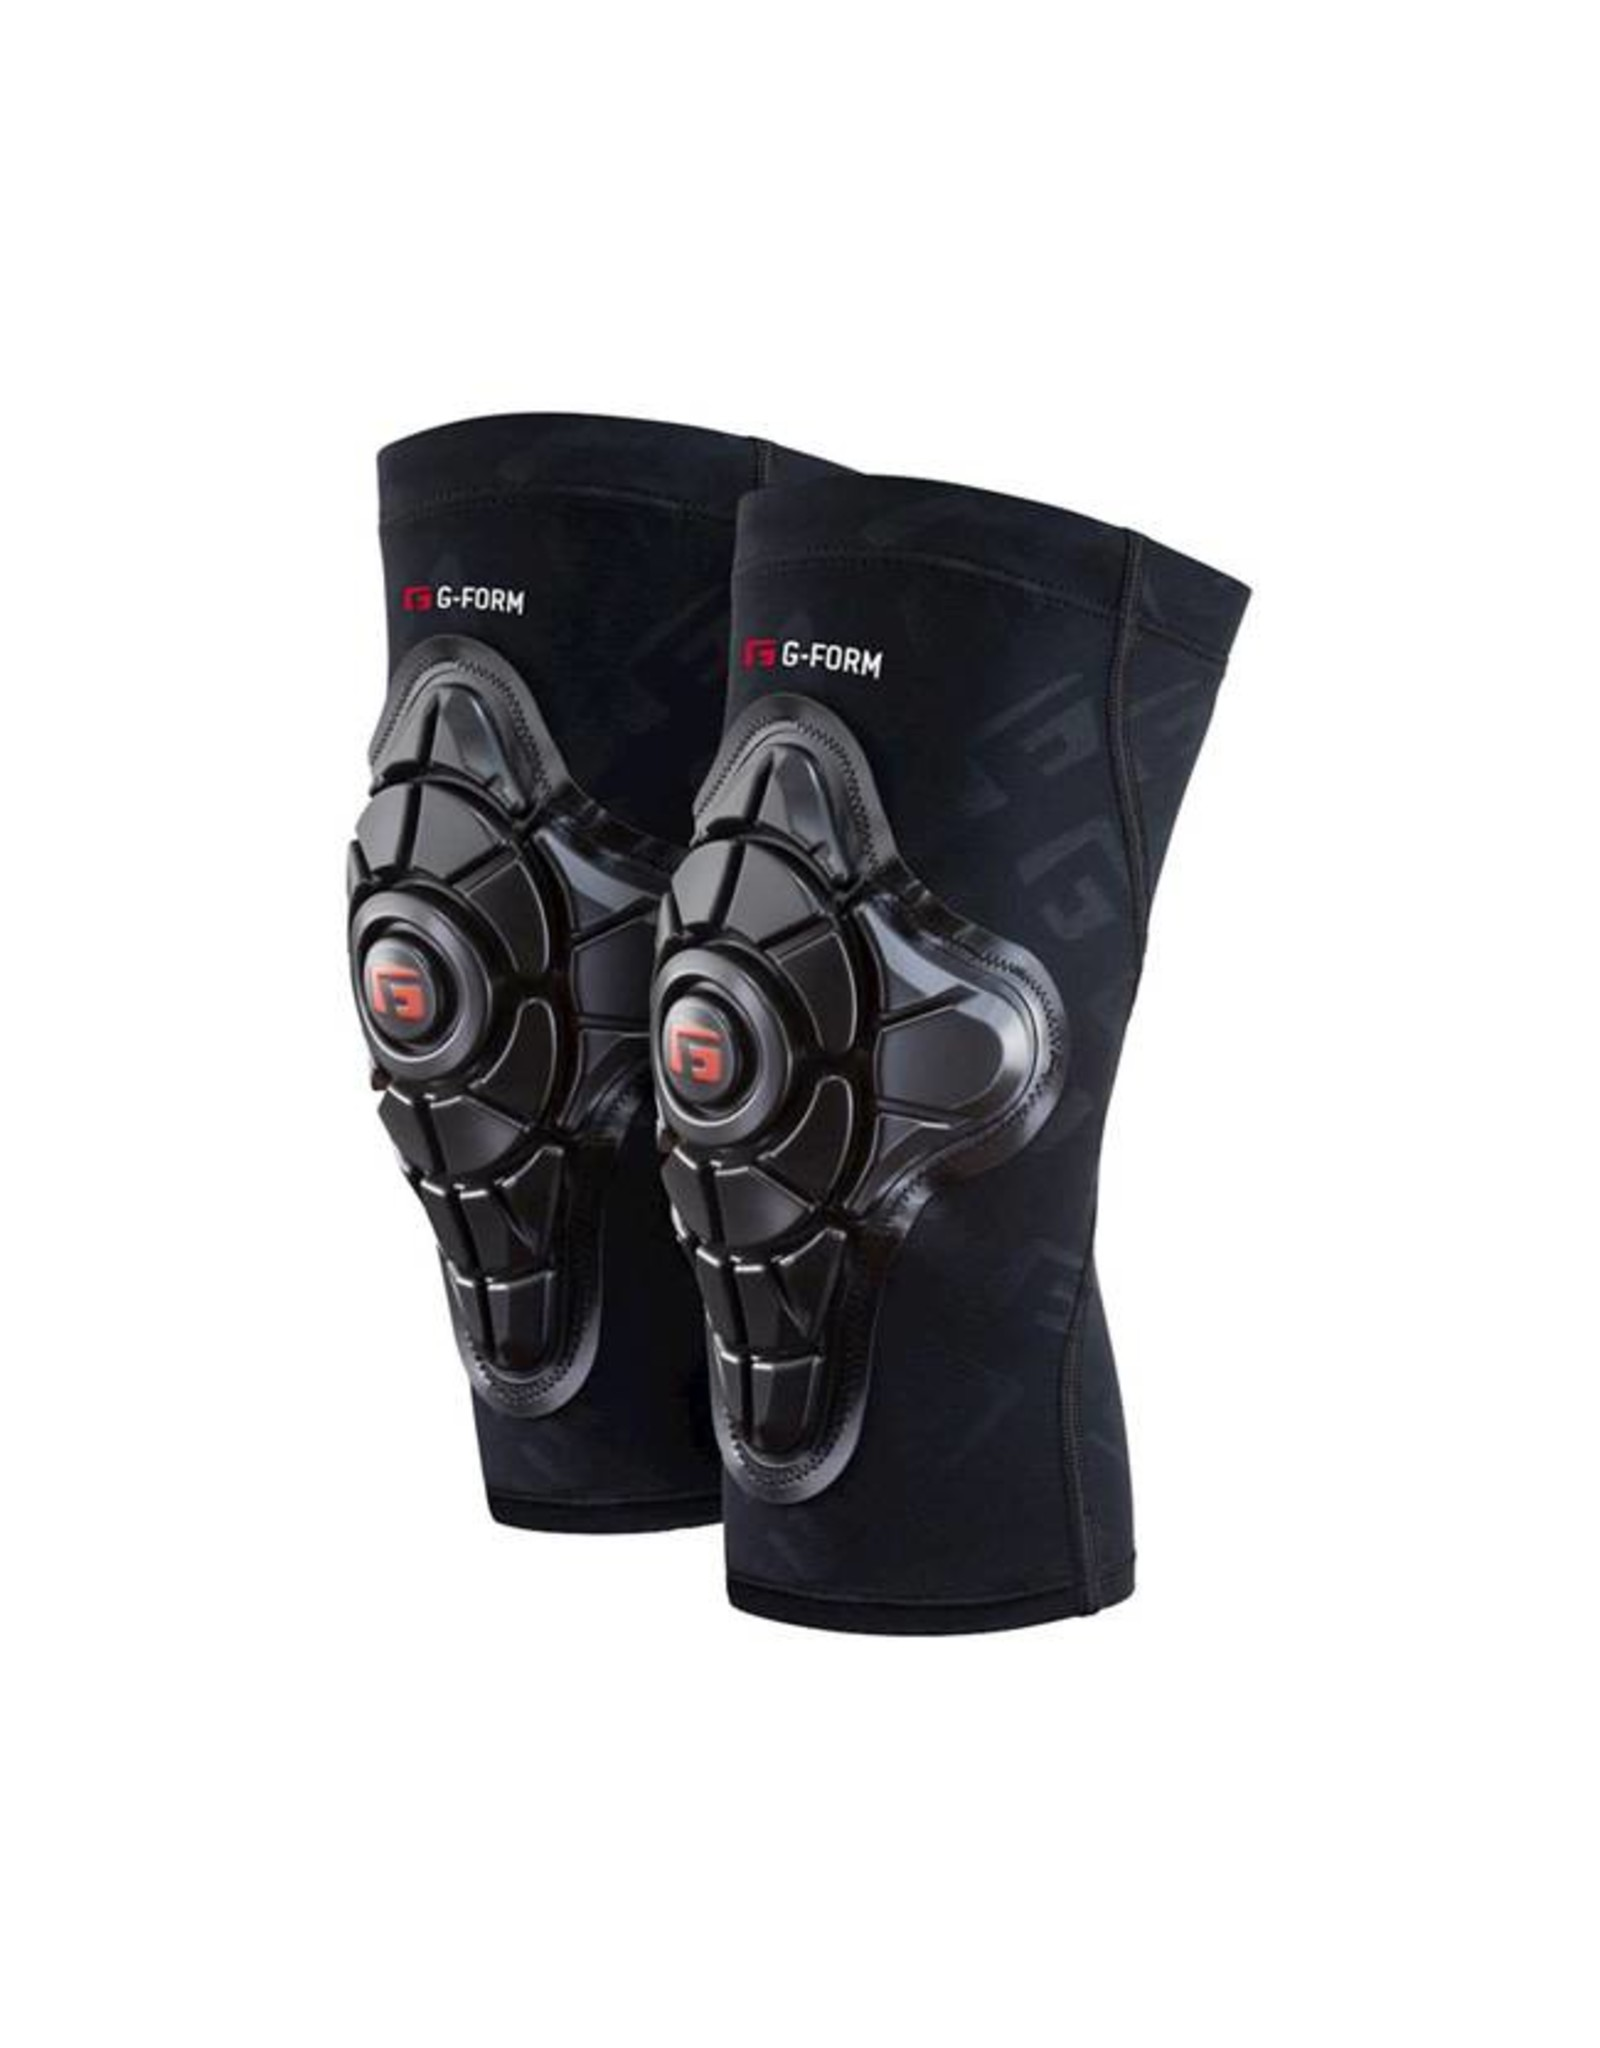 G-Form G-Form Pro-X Youth Knee Pad: Black/Embossed G, SM/MD